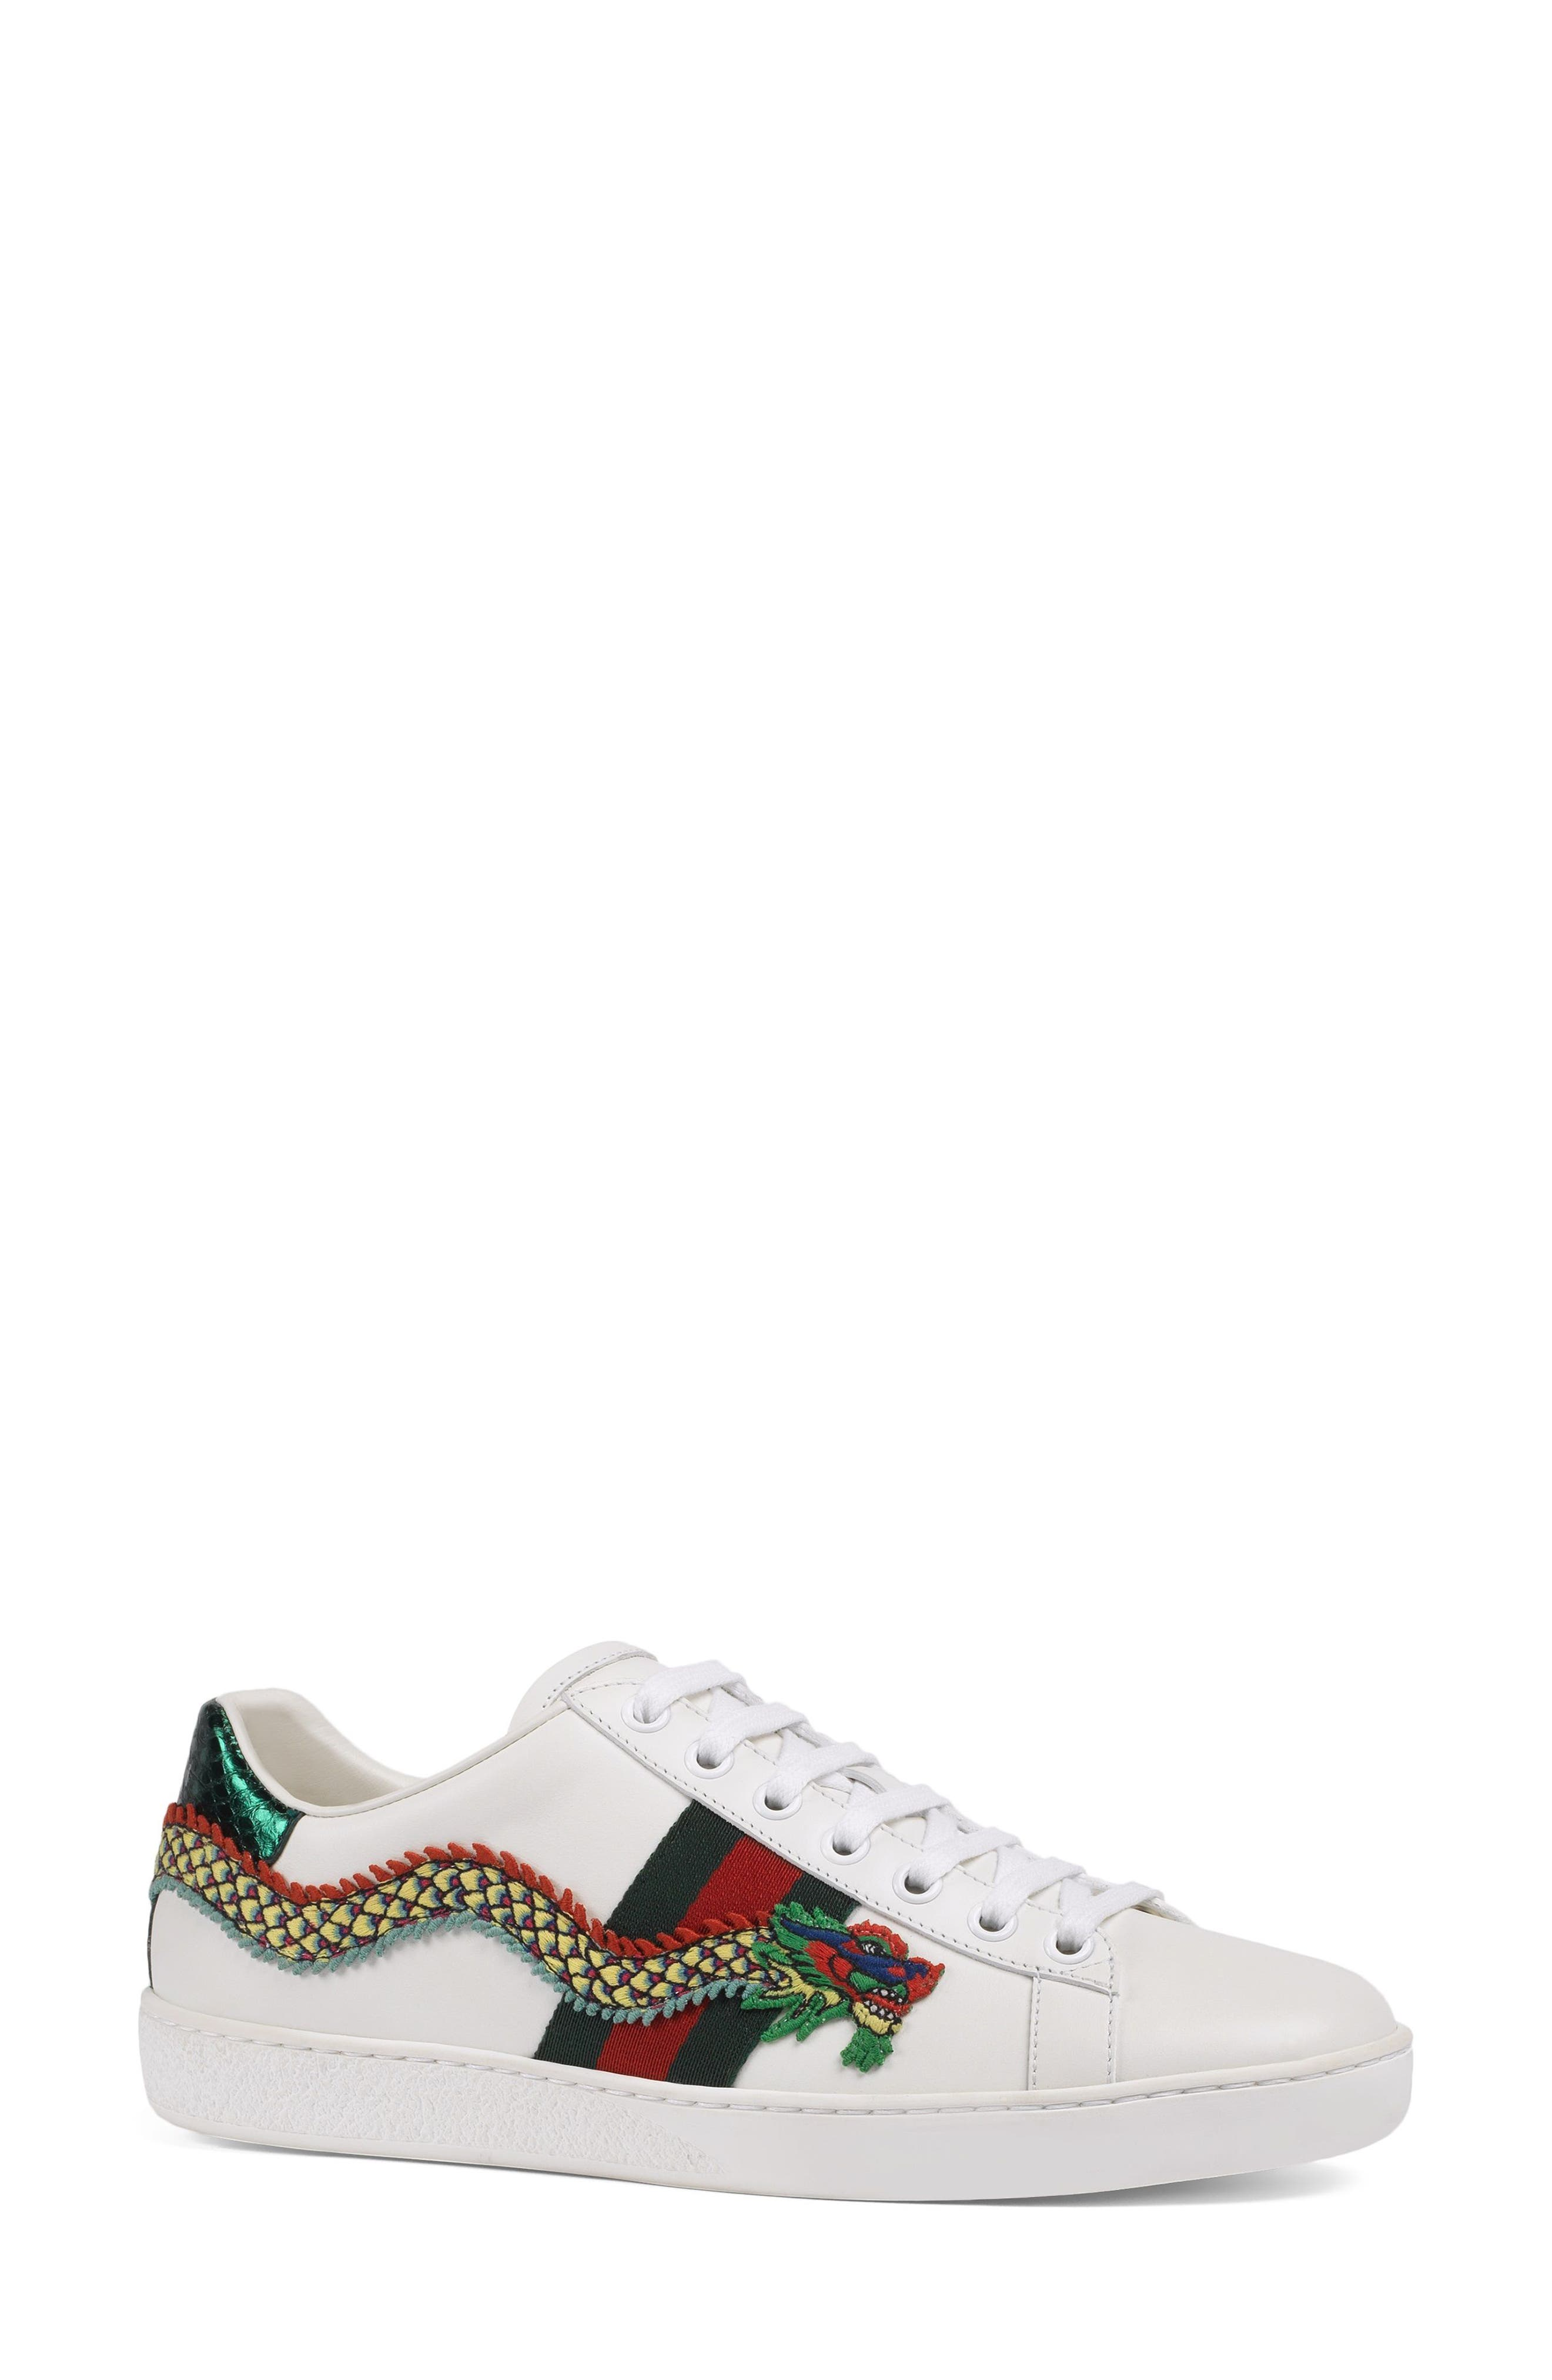 New Ace Dragon Sneaker,                             Alternate thumbnail 2, color,                             White Leather